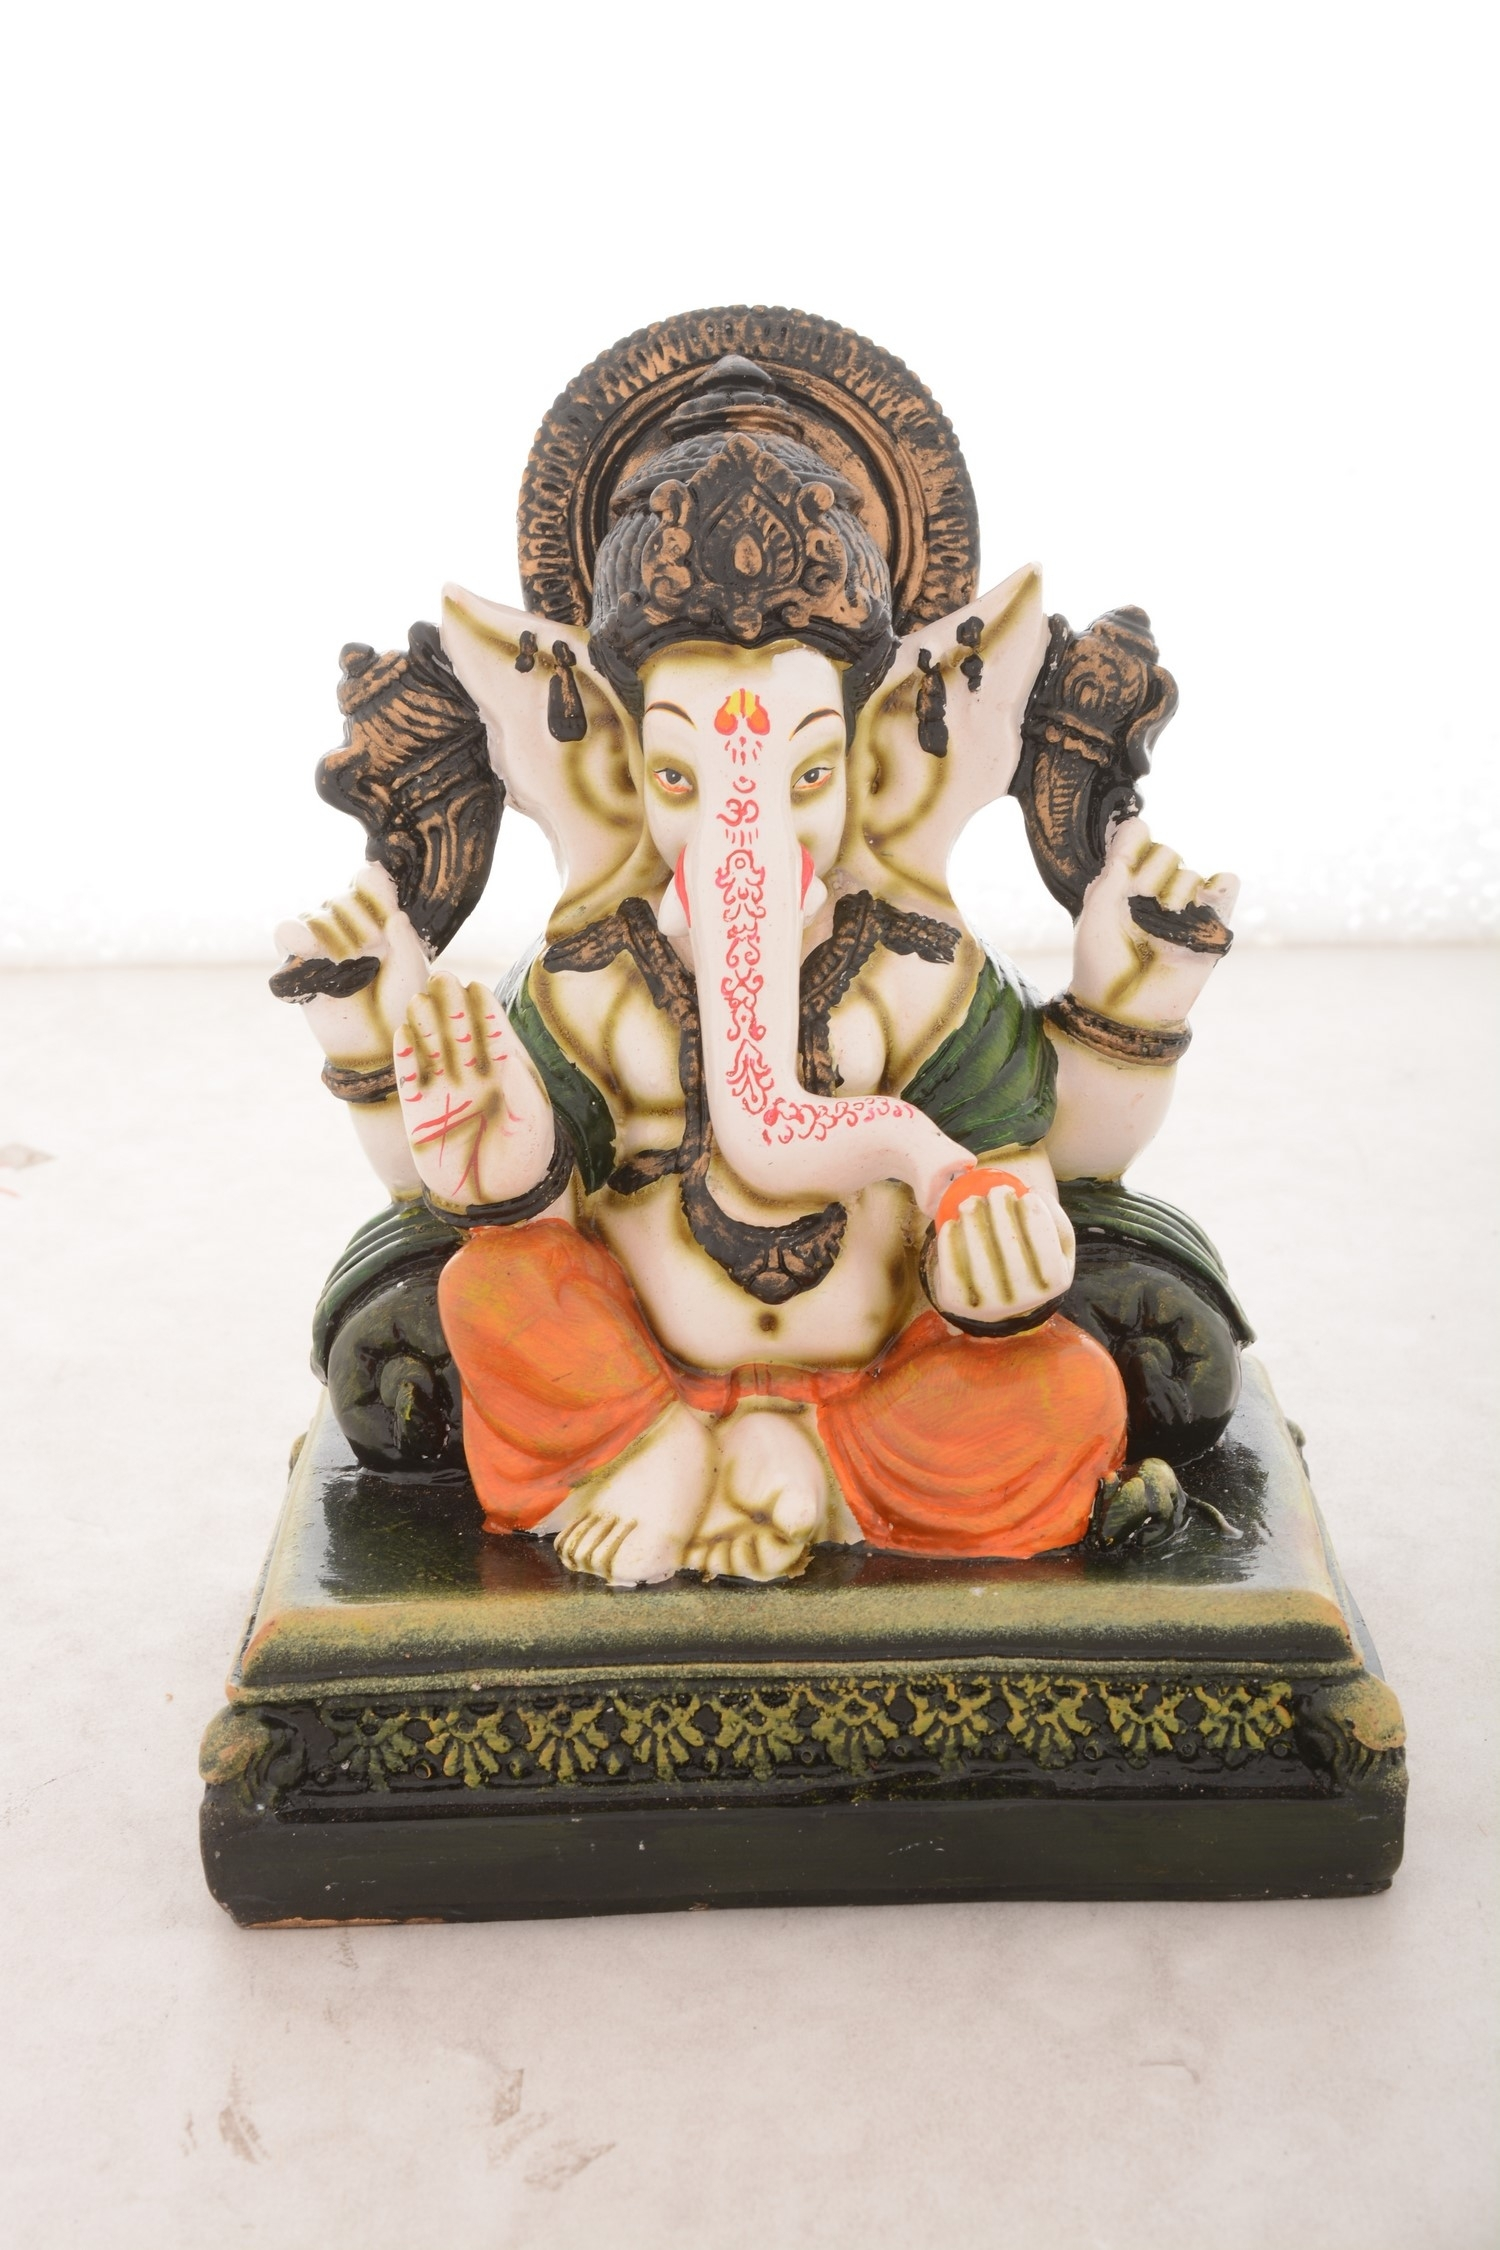 Premium Figurine of Blessing Lord Ganesha Indian Home Decor